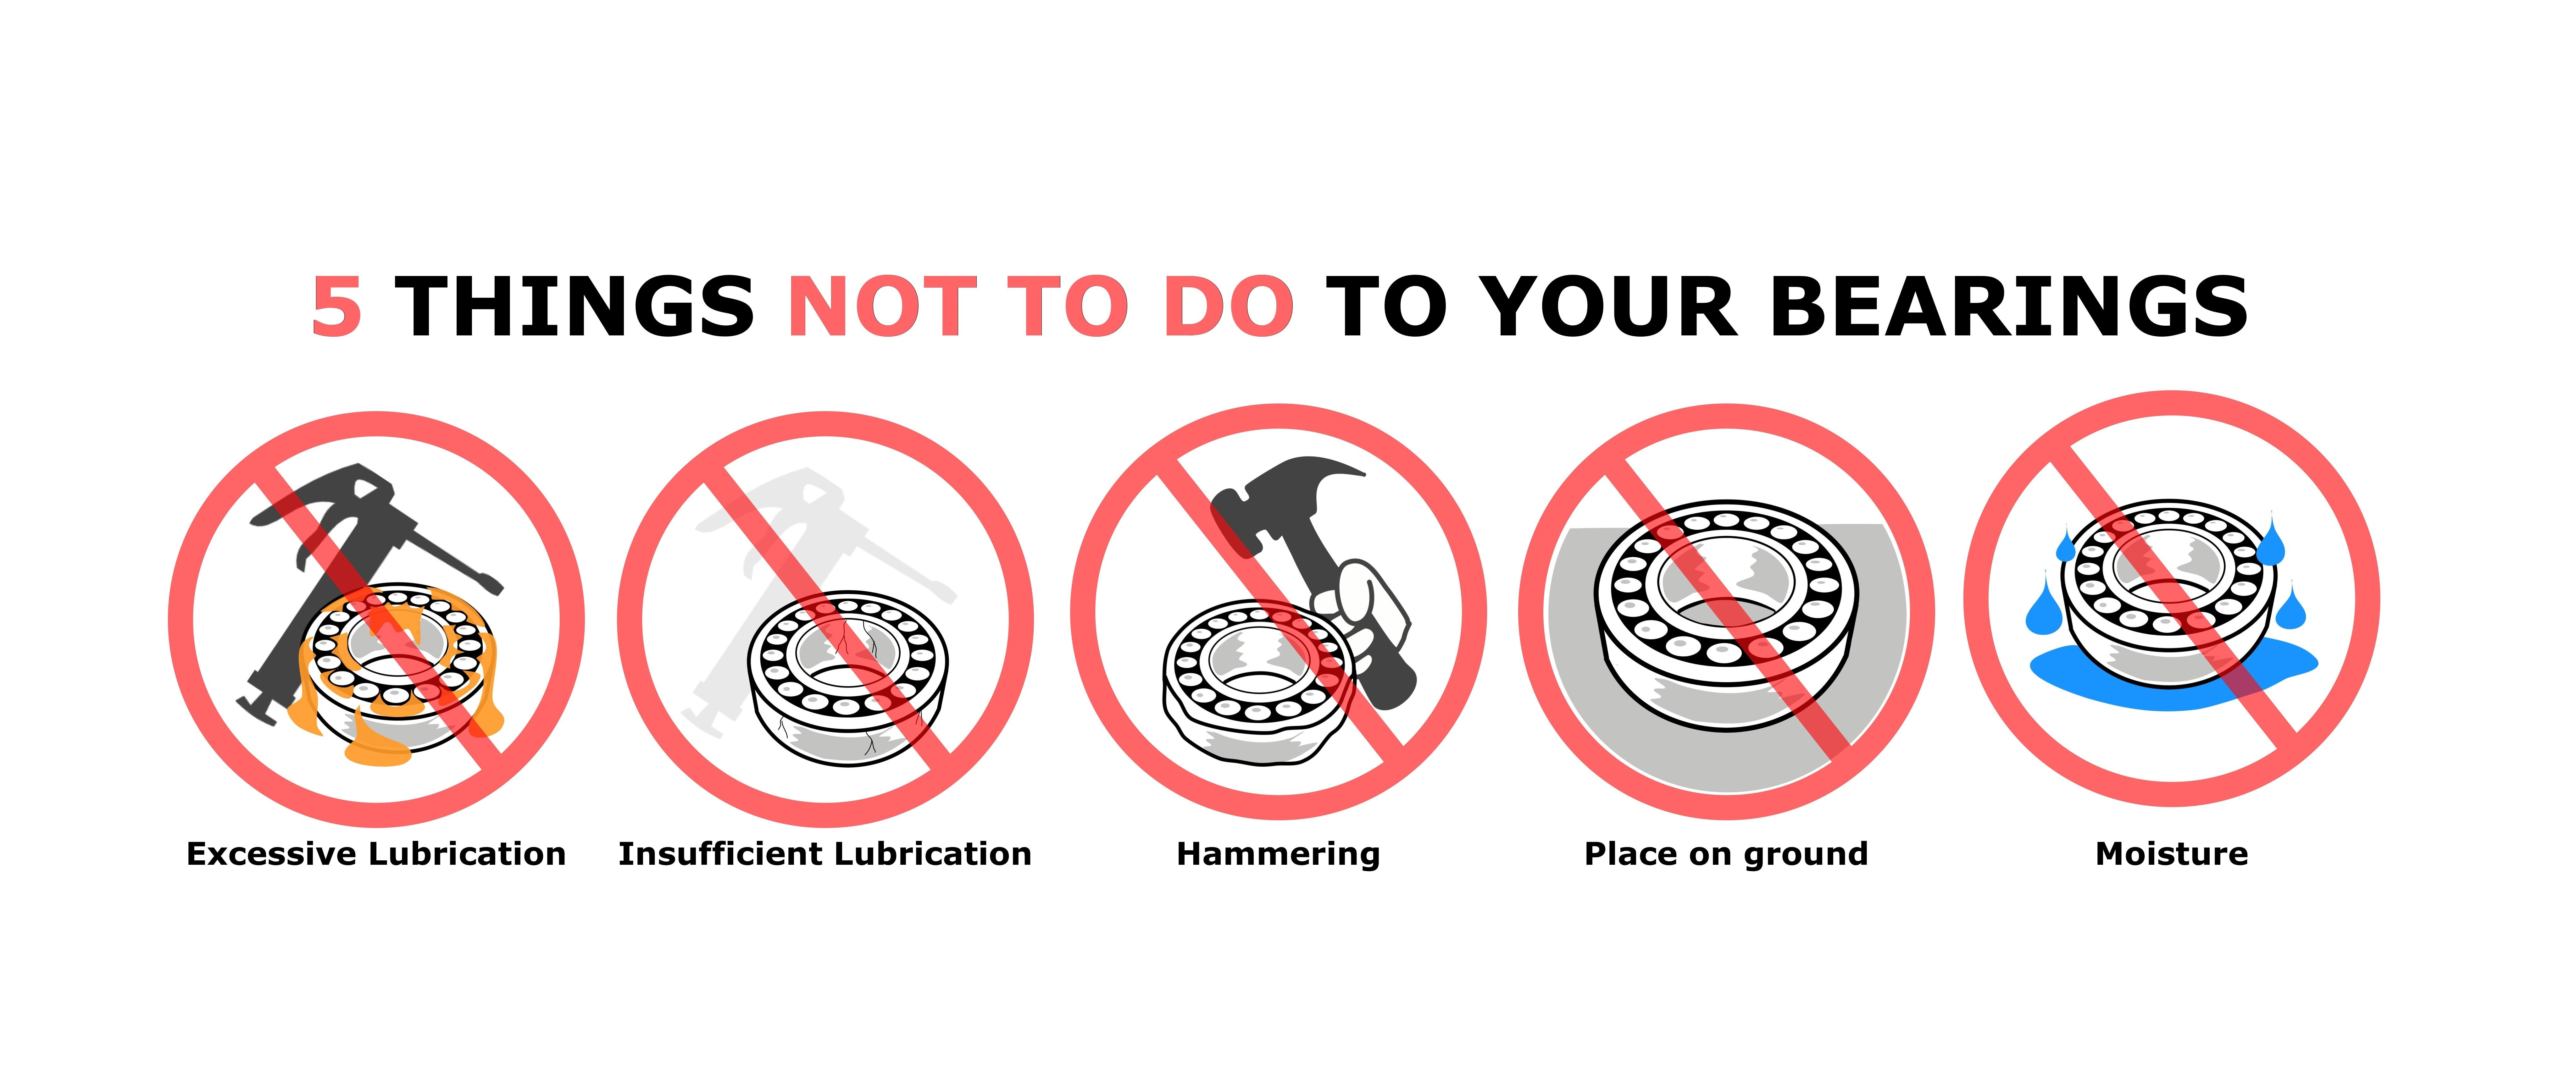 5 Things Not To Do To Your Bearings_Blog Feature Image (3)